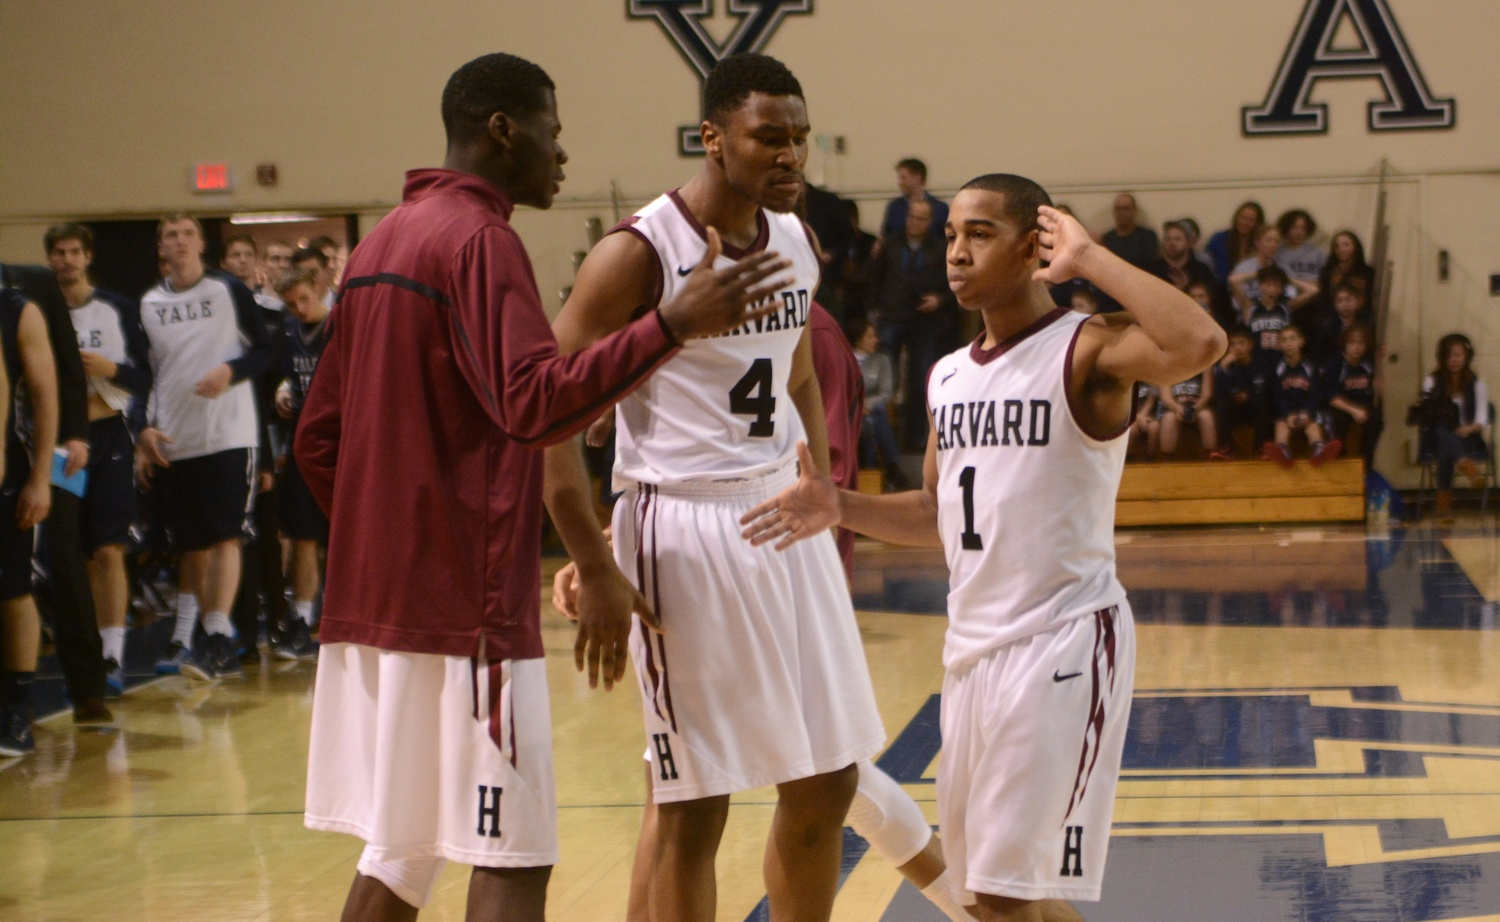 Chris E. Egi '18, left, celebrates with teammates Siyani T. Chambers '16 and Zena Edosomwan '17 after a win over Yale in 2015.